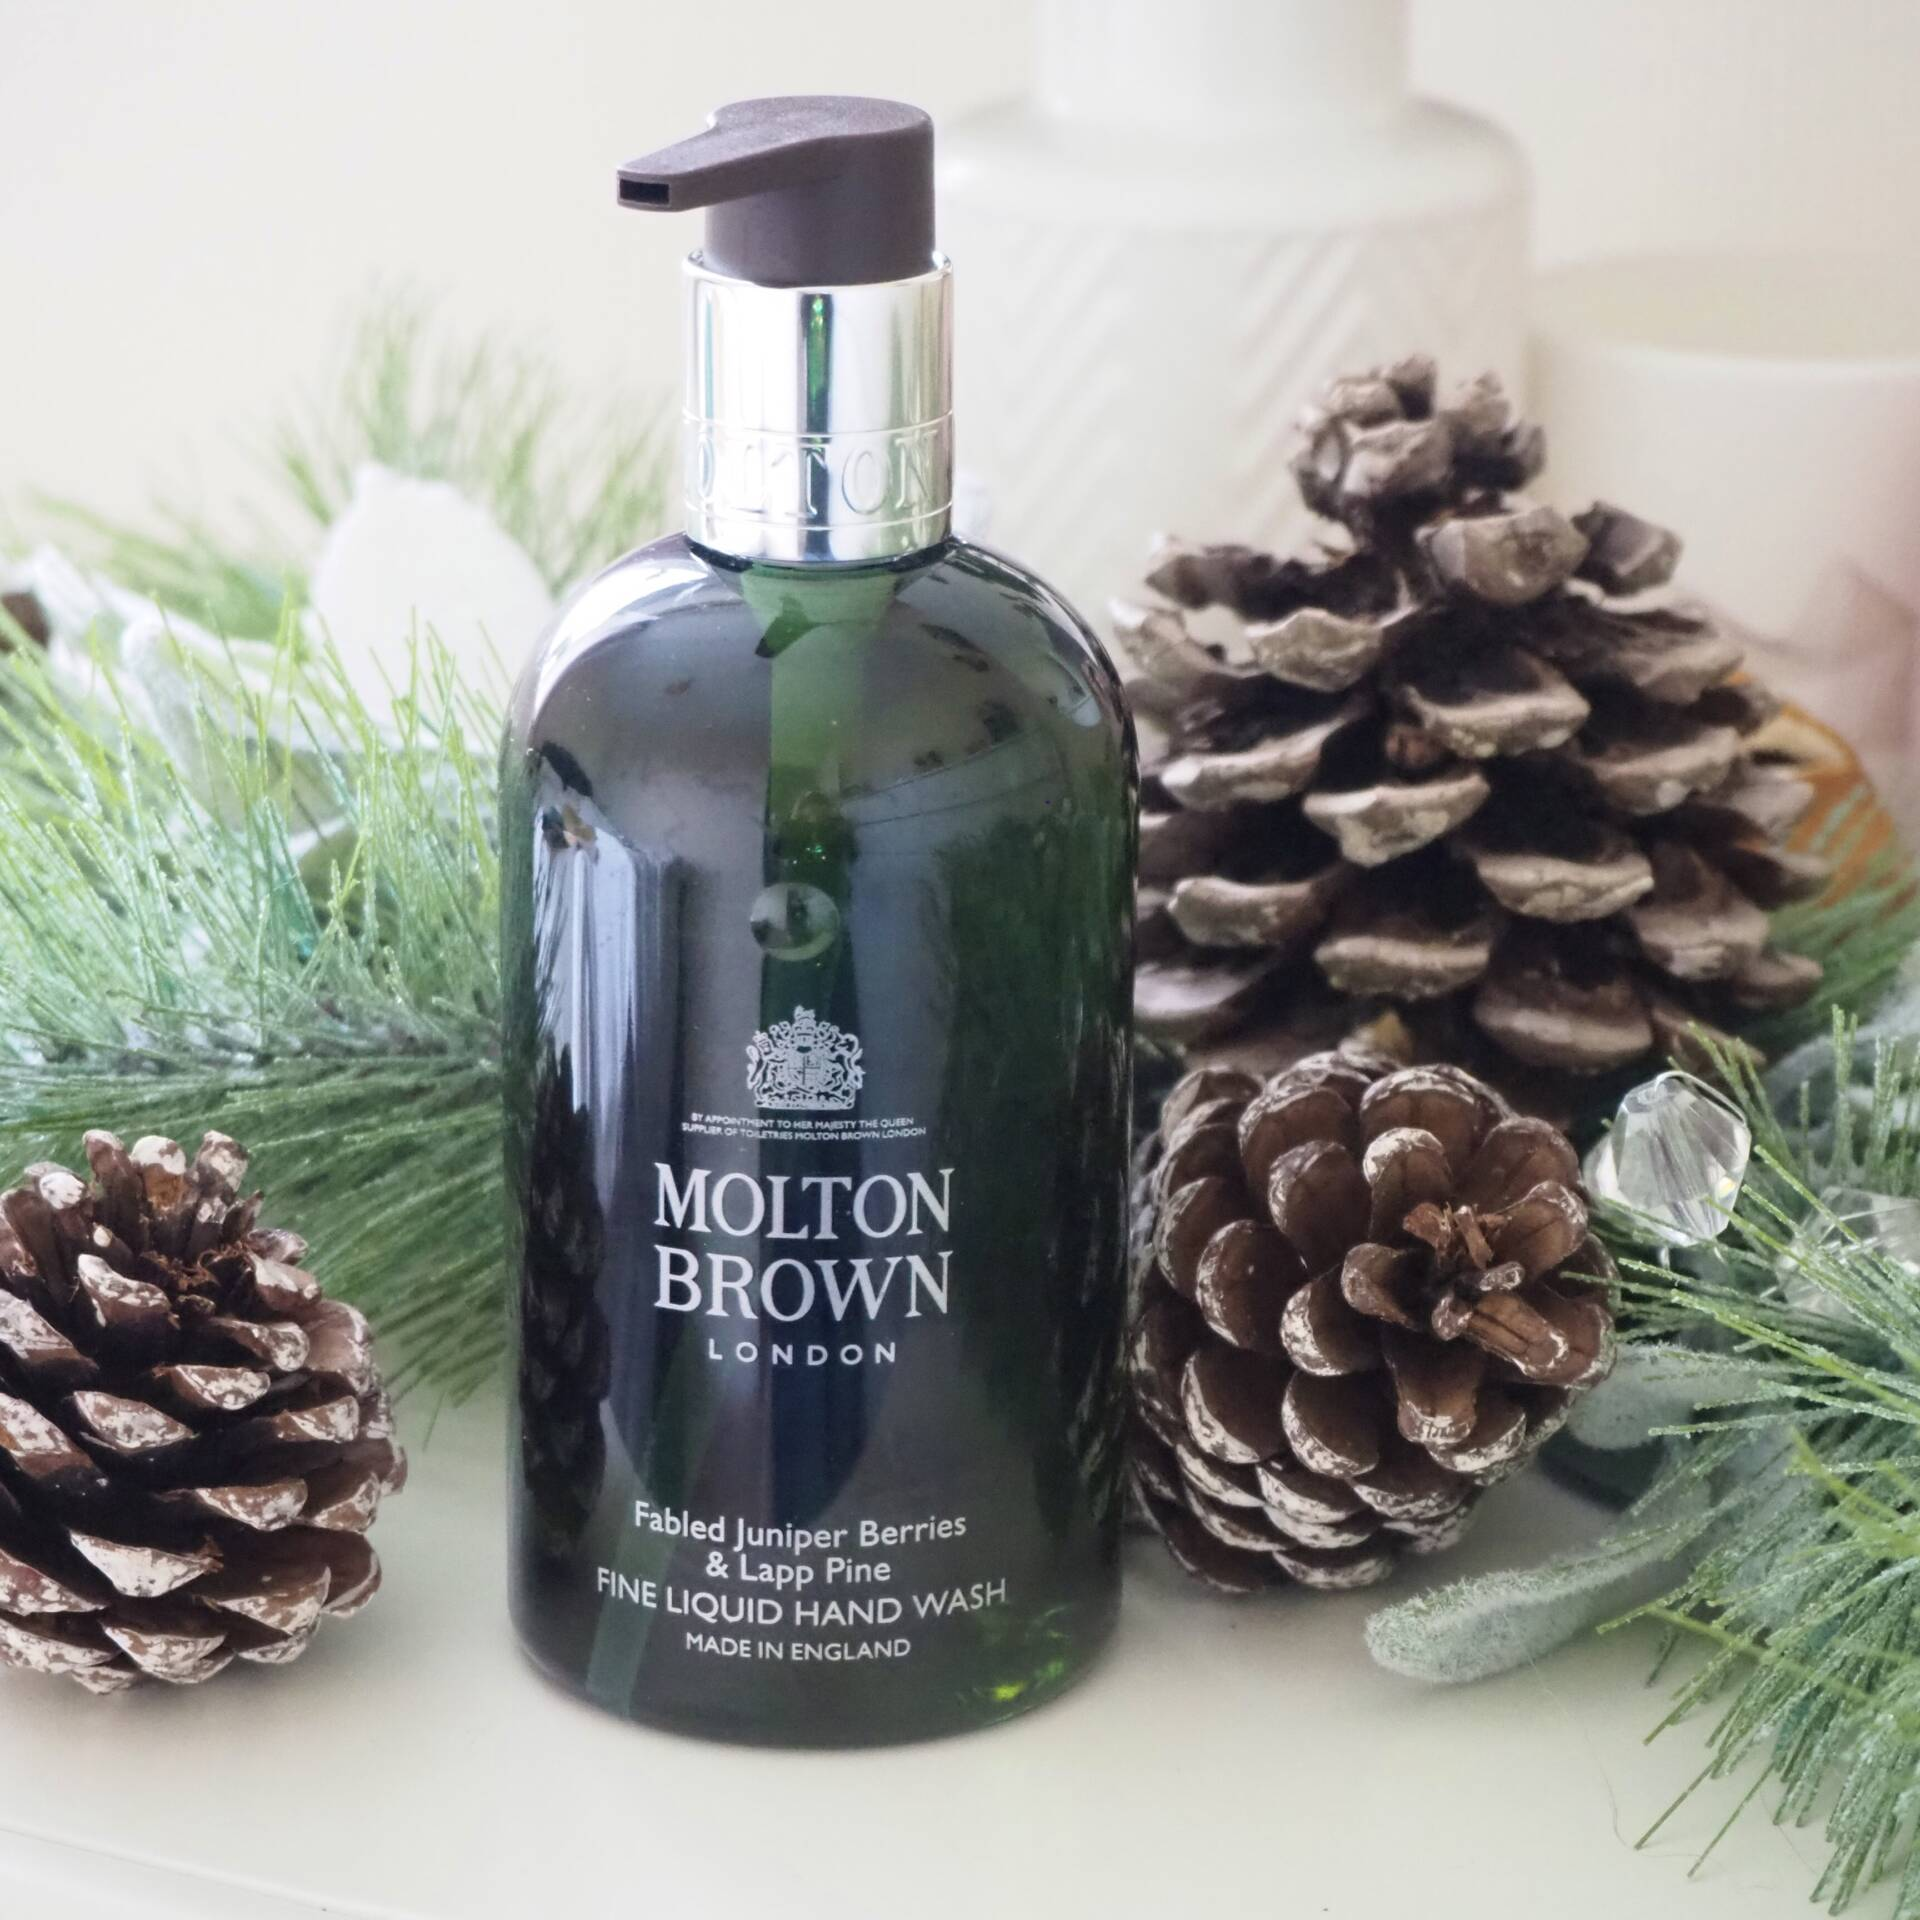 molton-brown-fabled-juniper-berries-and-lapp-pine